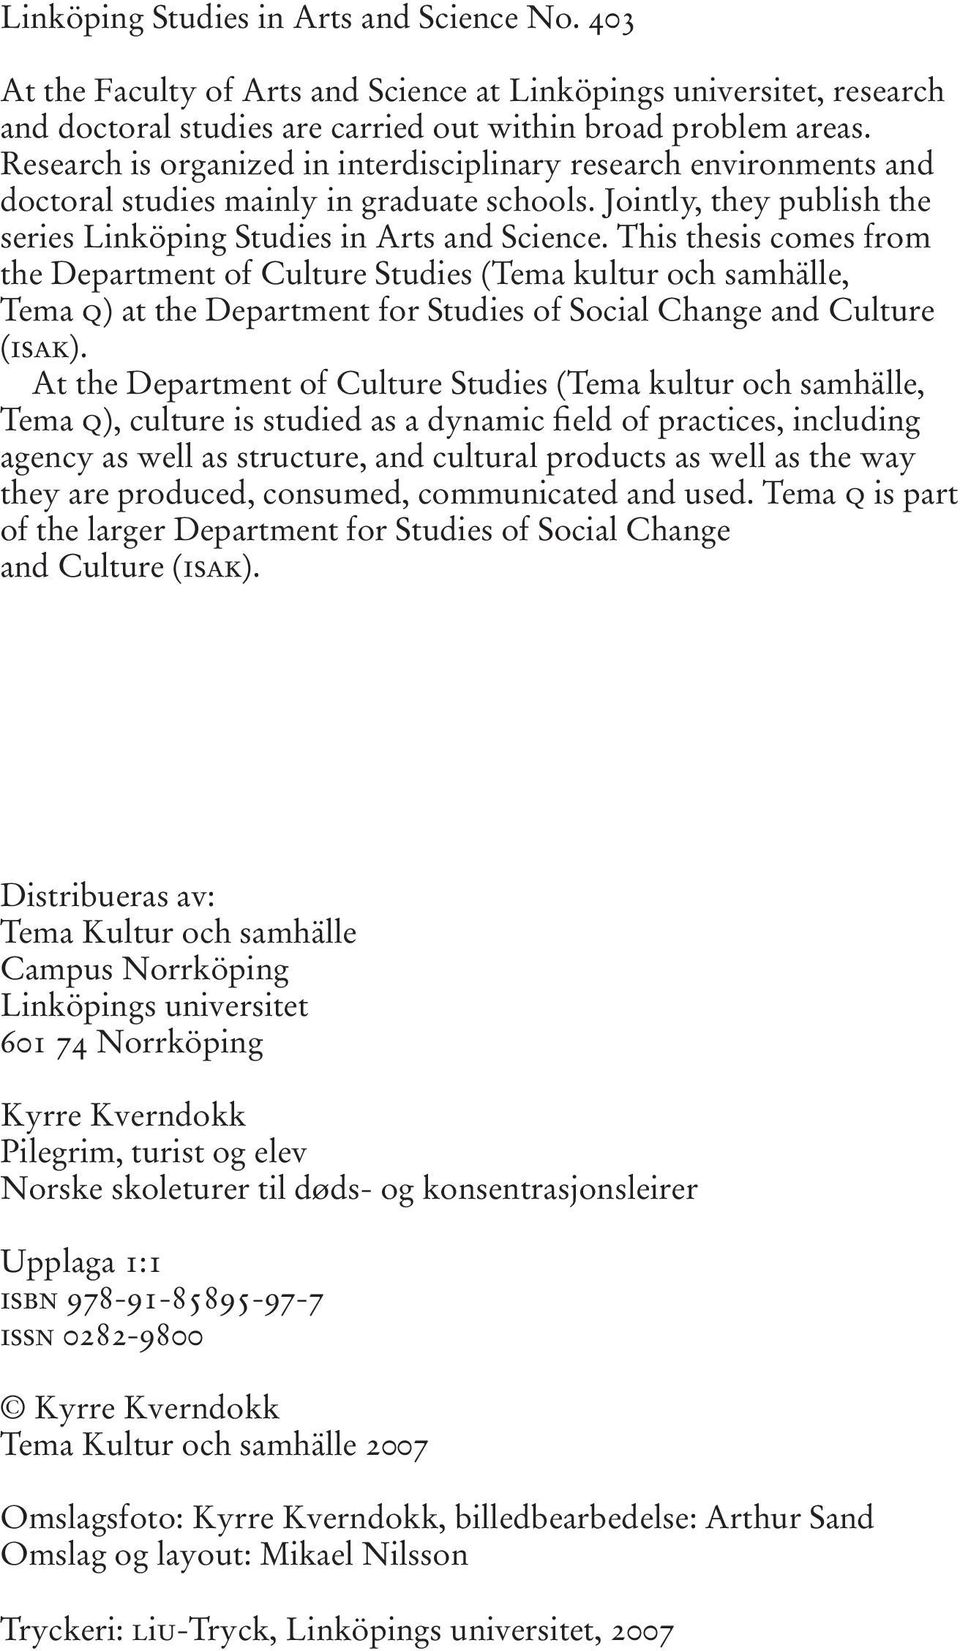 This thesis comes from the Department of Culture Studies (Tema kultur och samhälle, Tema q) at the Department for Studies of Social Change and Culture (isak).